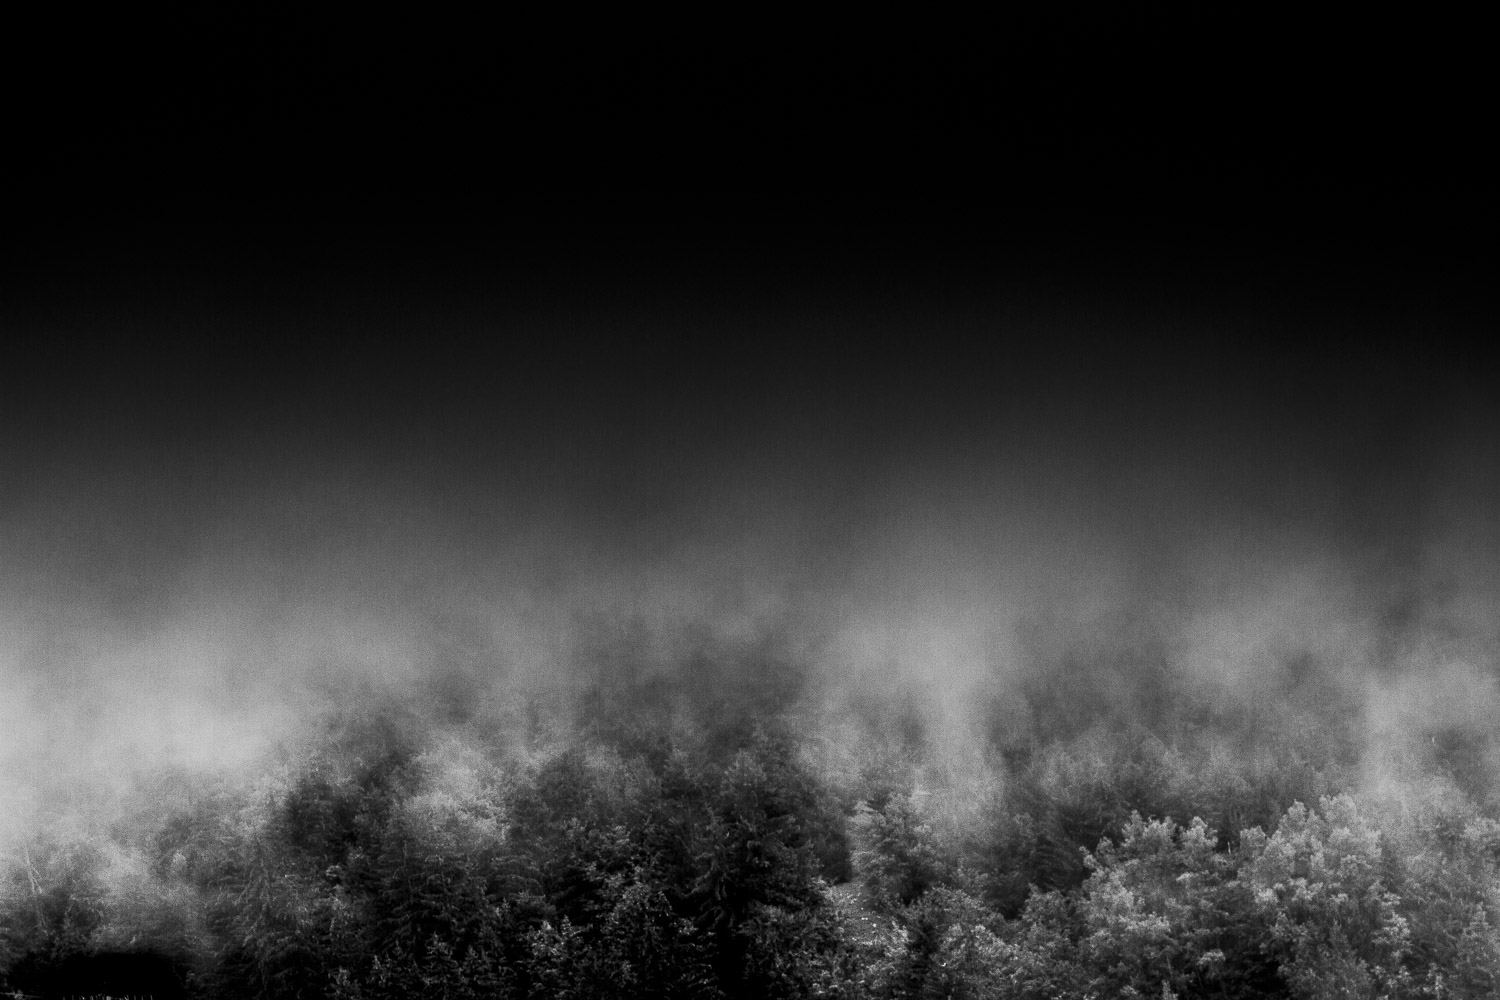 FOG I - Photo de Valmorel dans la brume - Photo d'art édition limitée